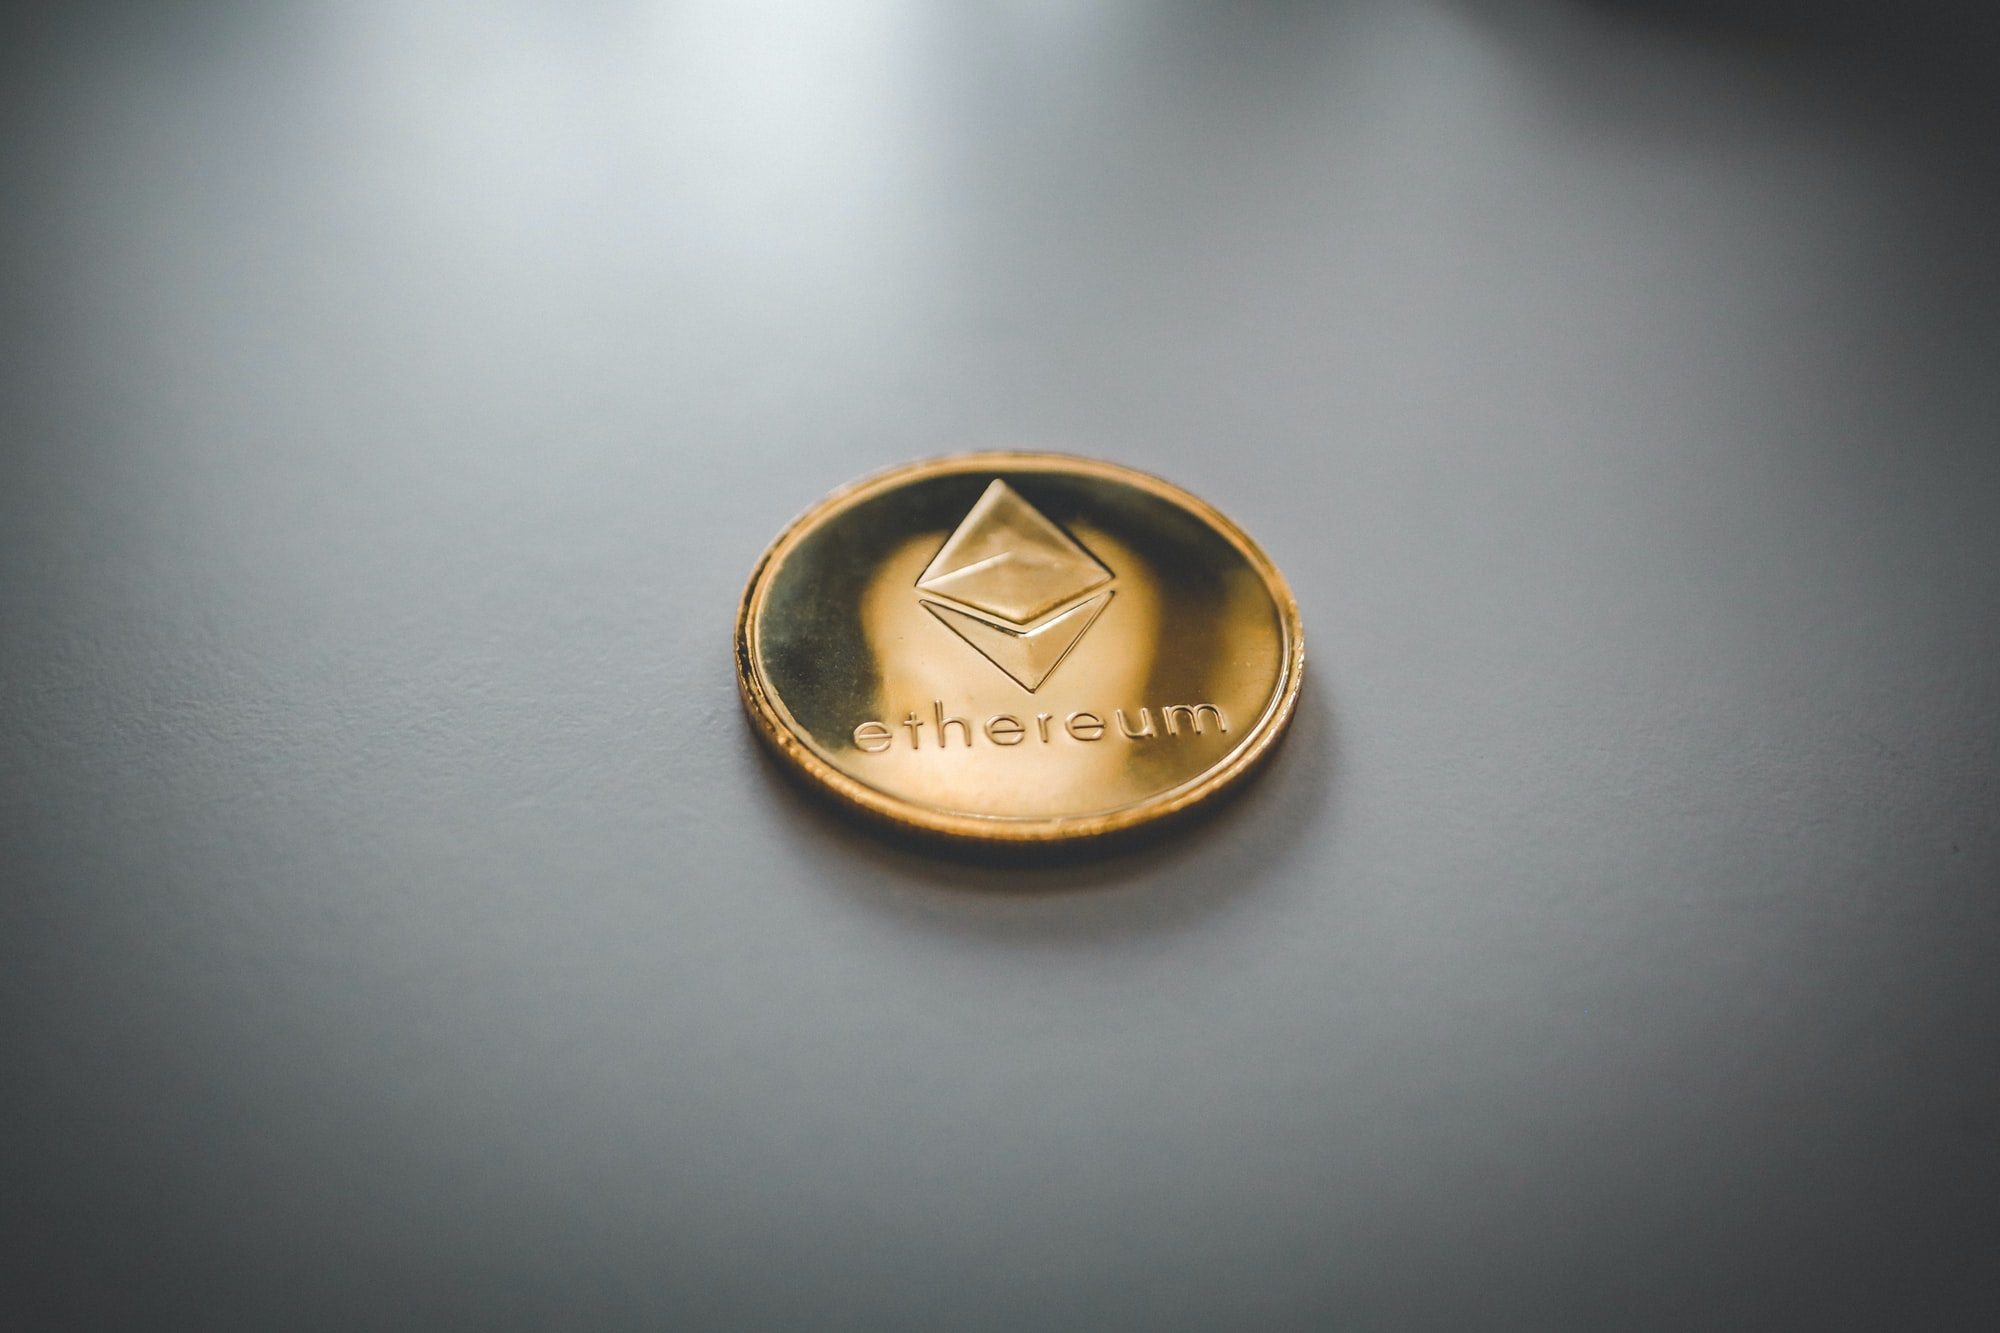 Physical Ethereum (ETH) coin on white surface.